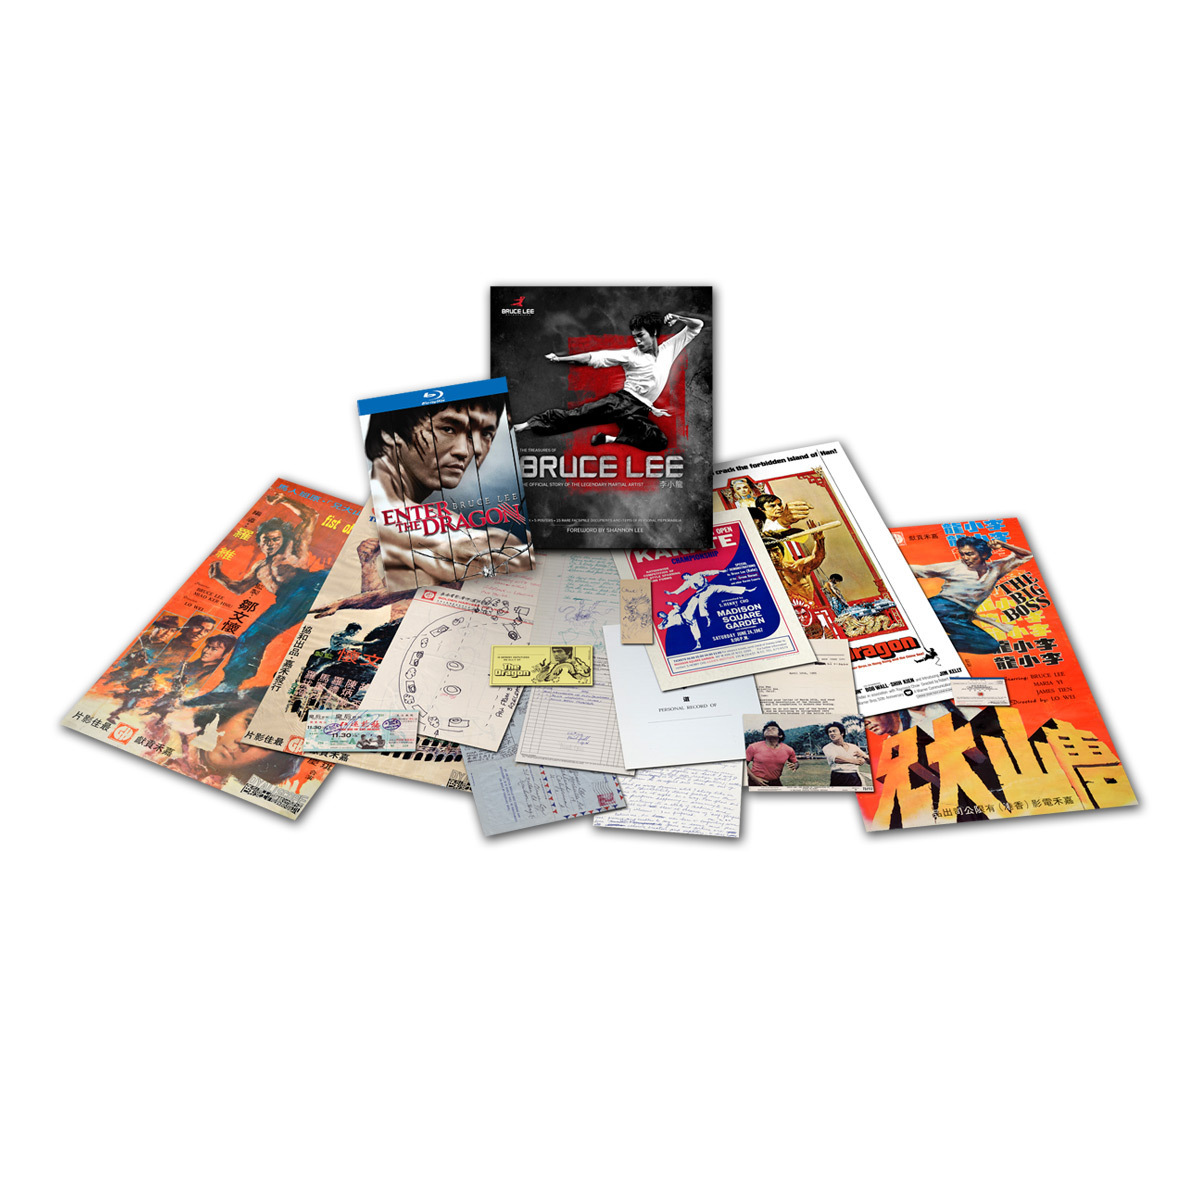 Bruce Lee Enter the Dragon 40th Anniversary BluRay and The Treasures of Bruce Lee Book Combo Pack